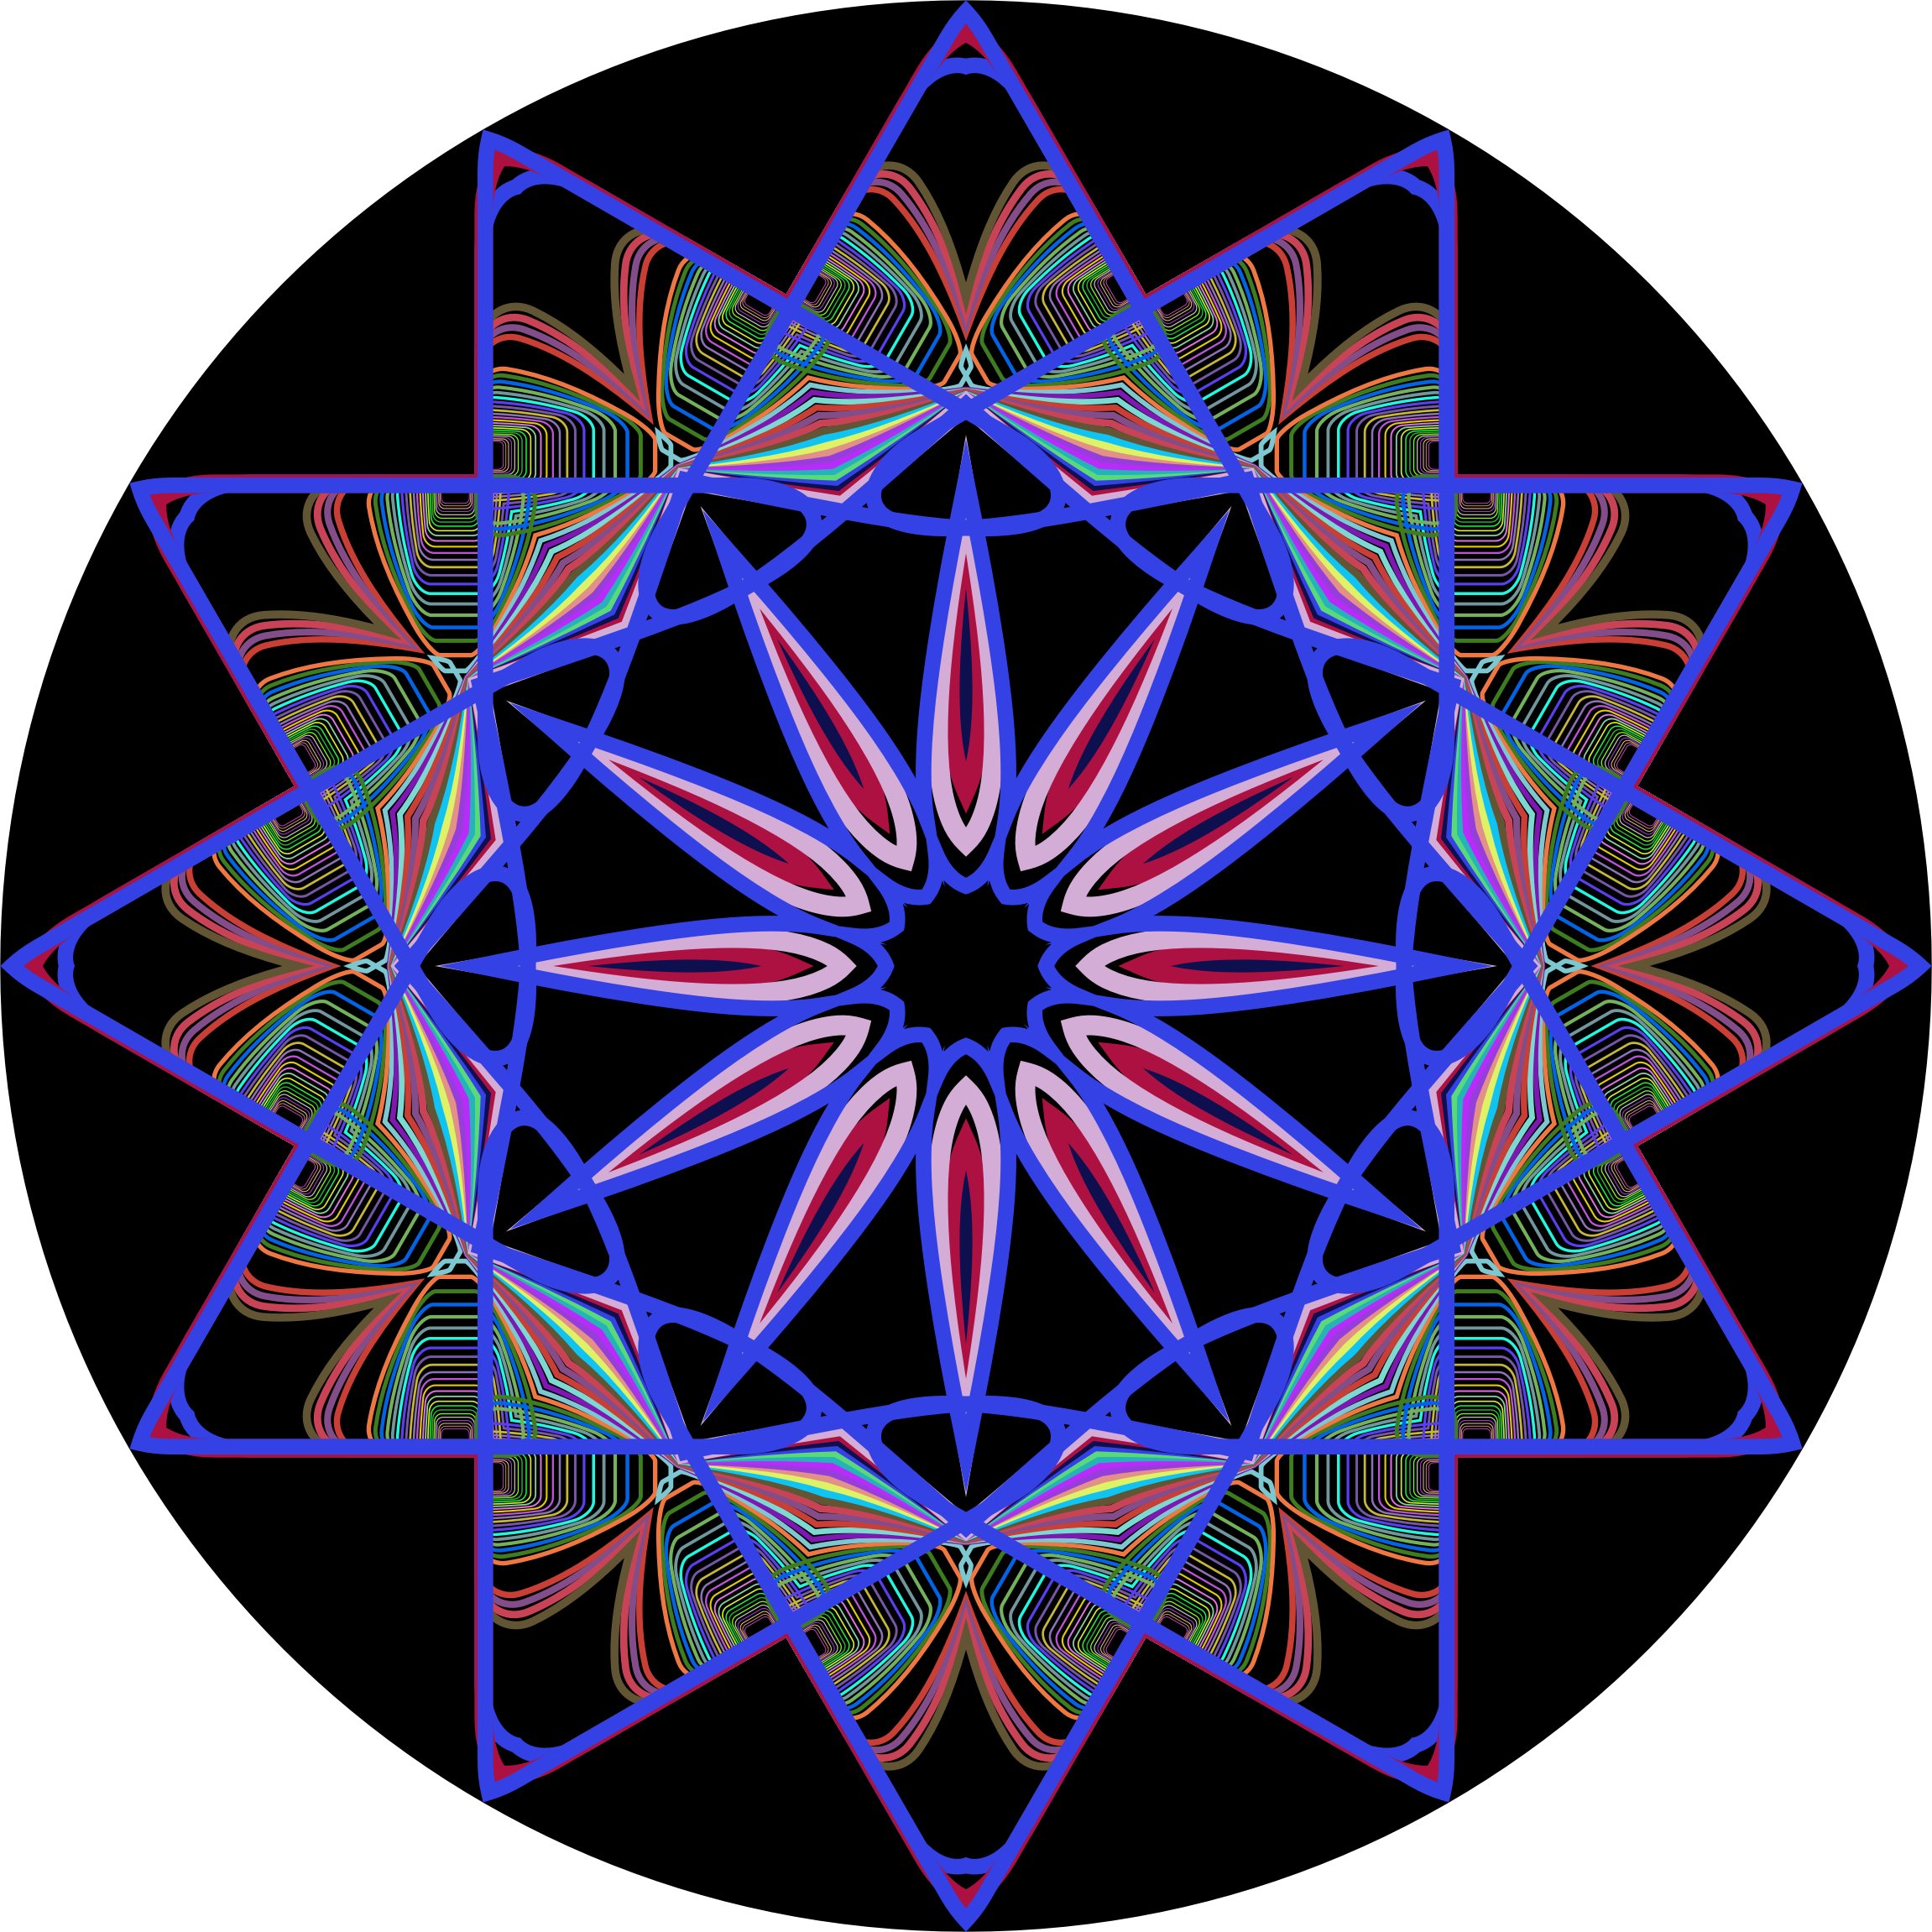 Prismatic Mandala Line Art Design 5 by GDJ